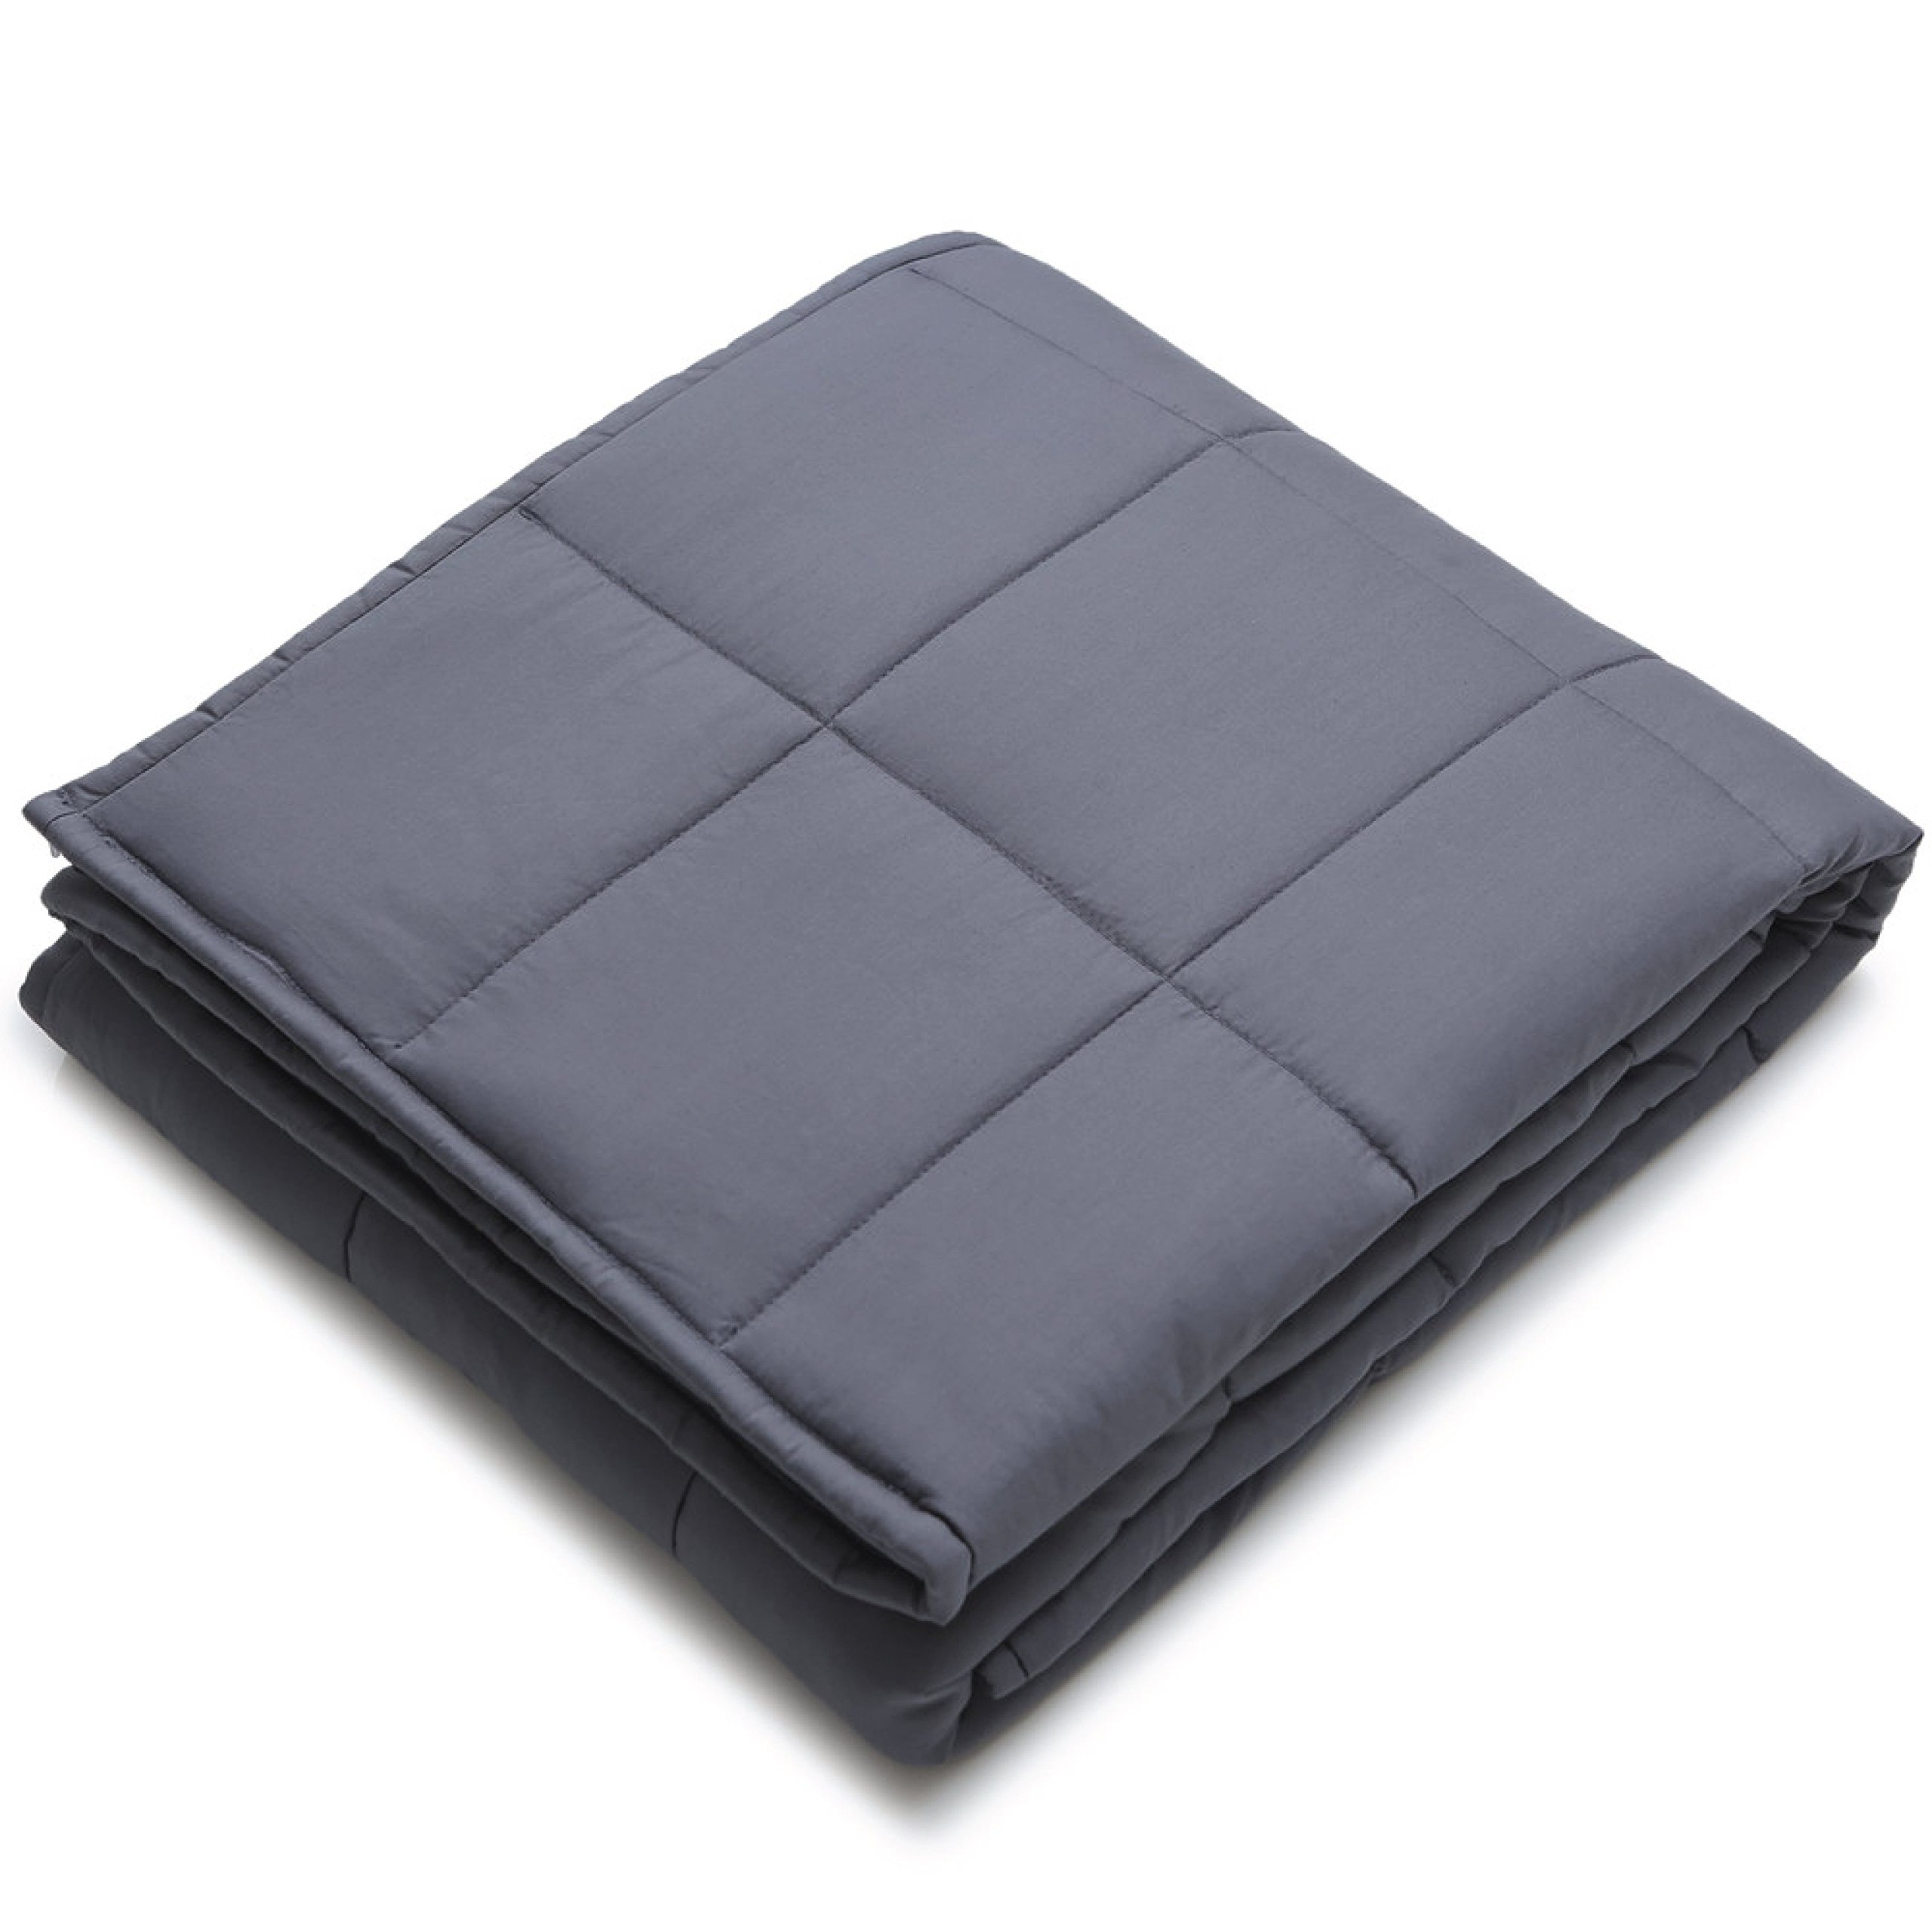 YnM Weighted Blanket, 5 lbs for 40 lbs Individuals | 100% Cotton Material with Glass Beads, 36'' x 48'' (Dark Grey) by YnM